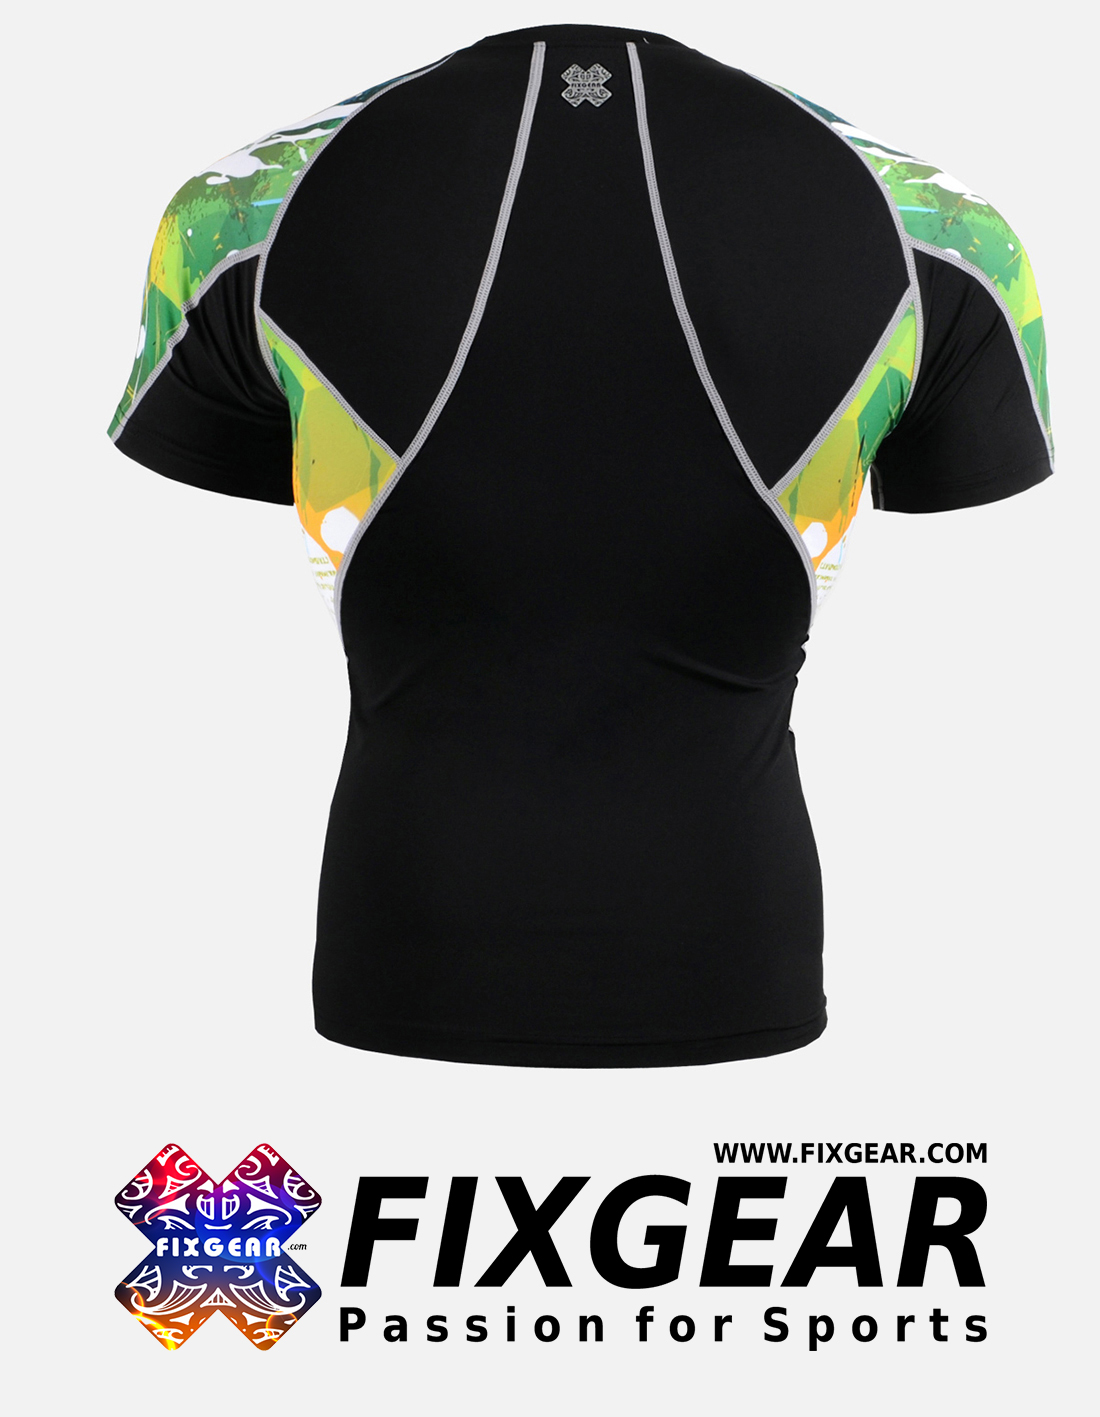 FIXGEAR C2S-B47 Compression Base Layer Shirt Short Sleeve